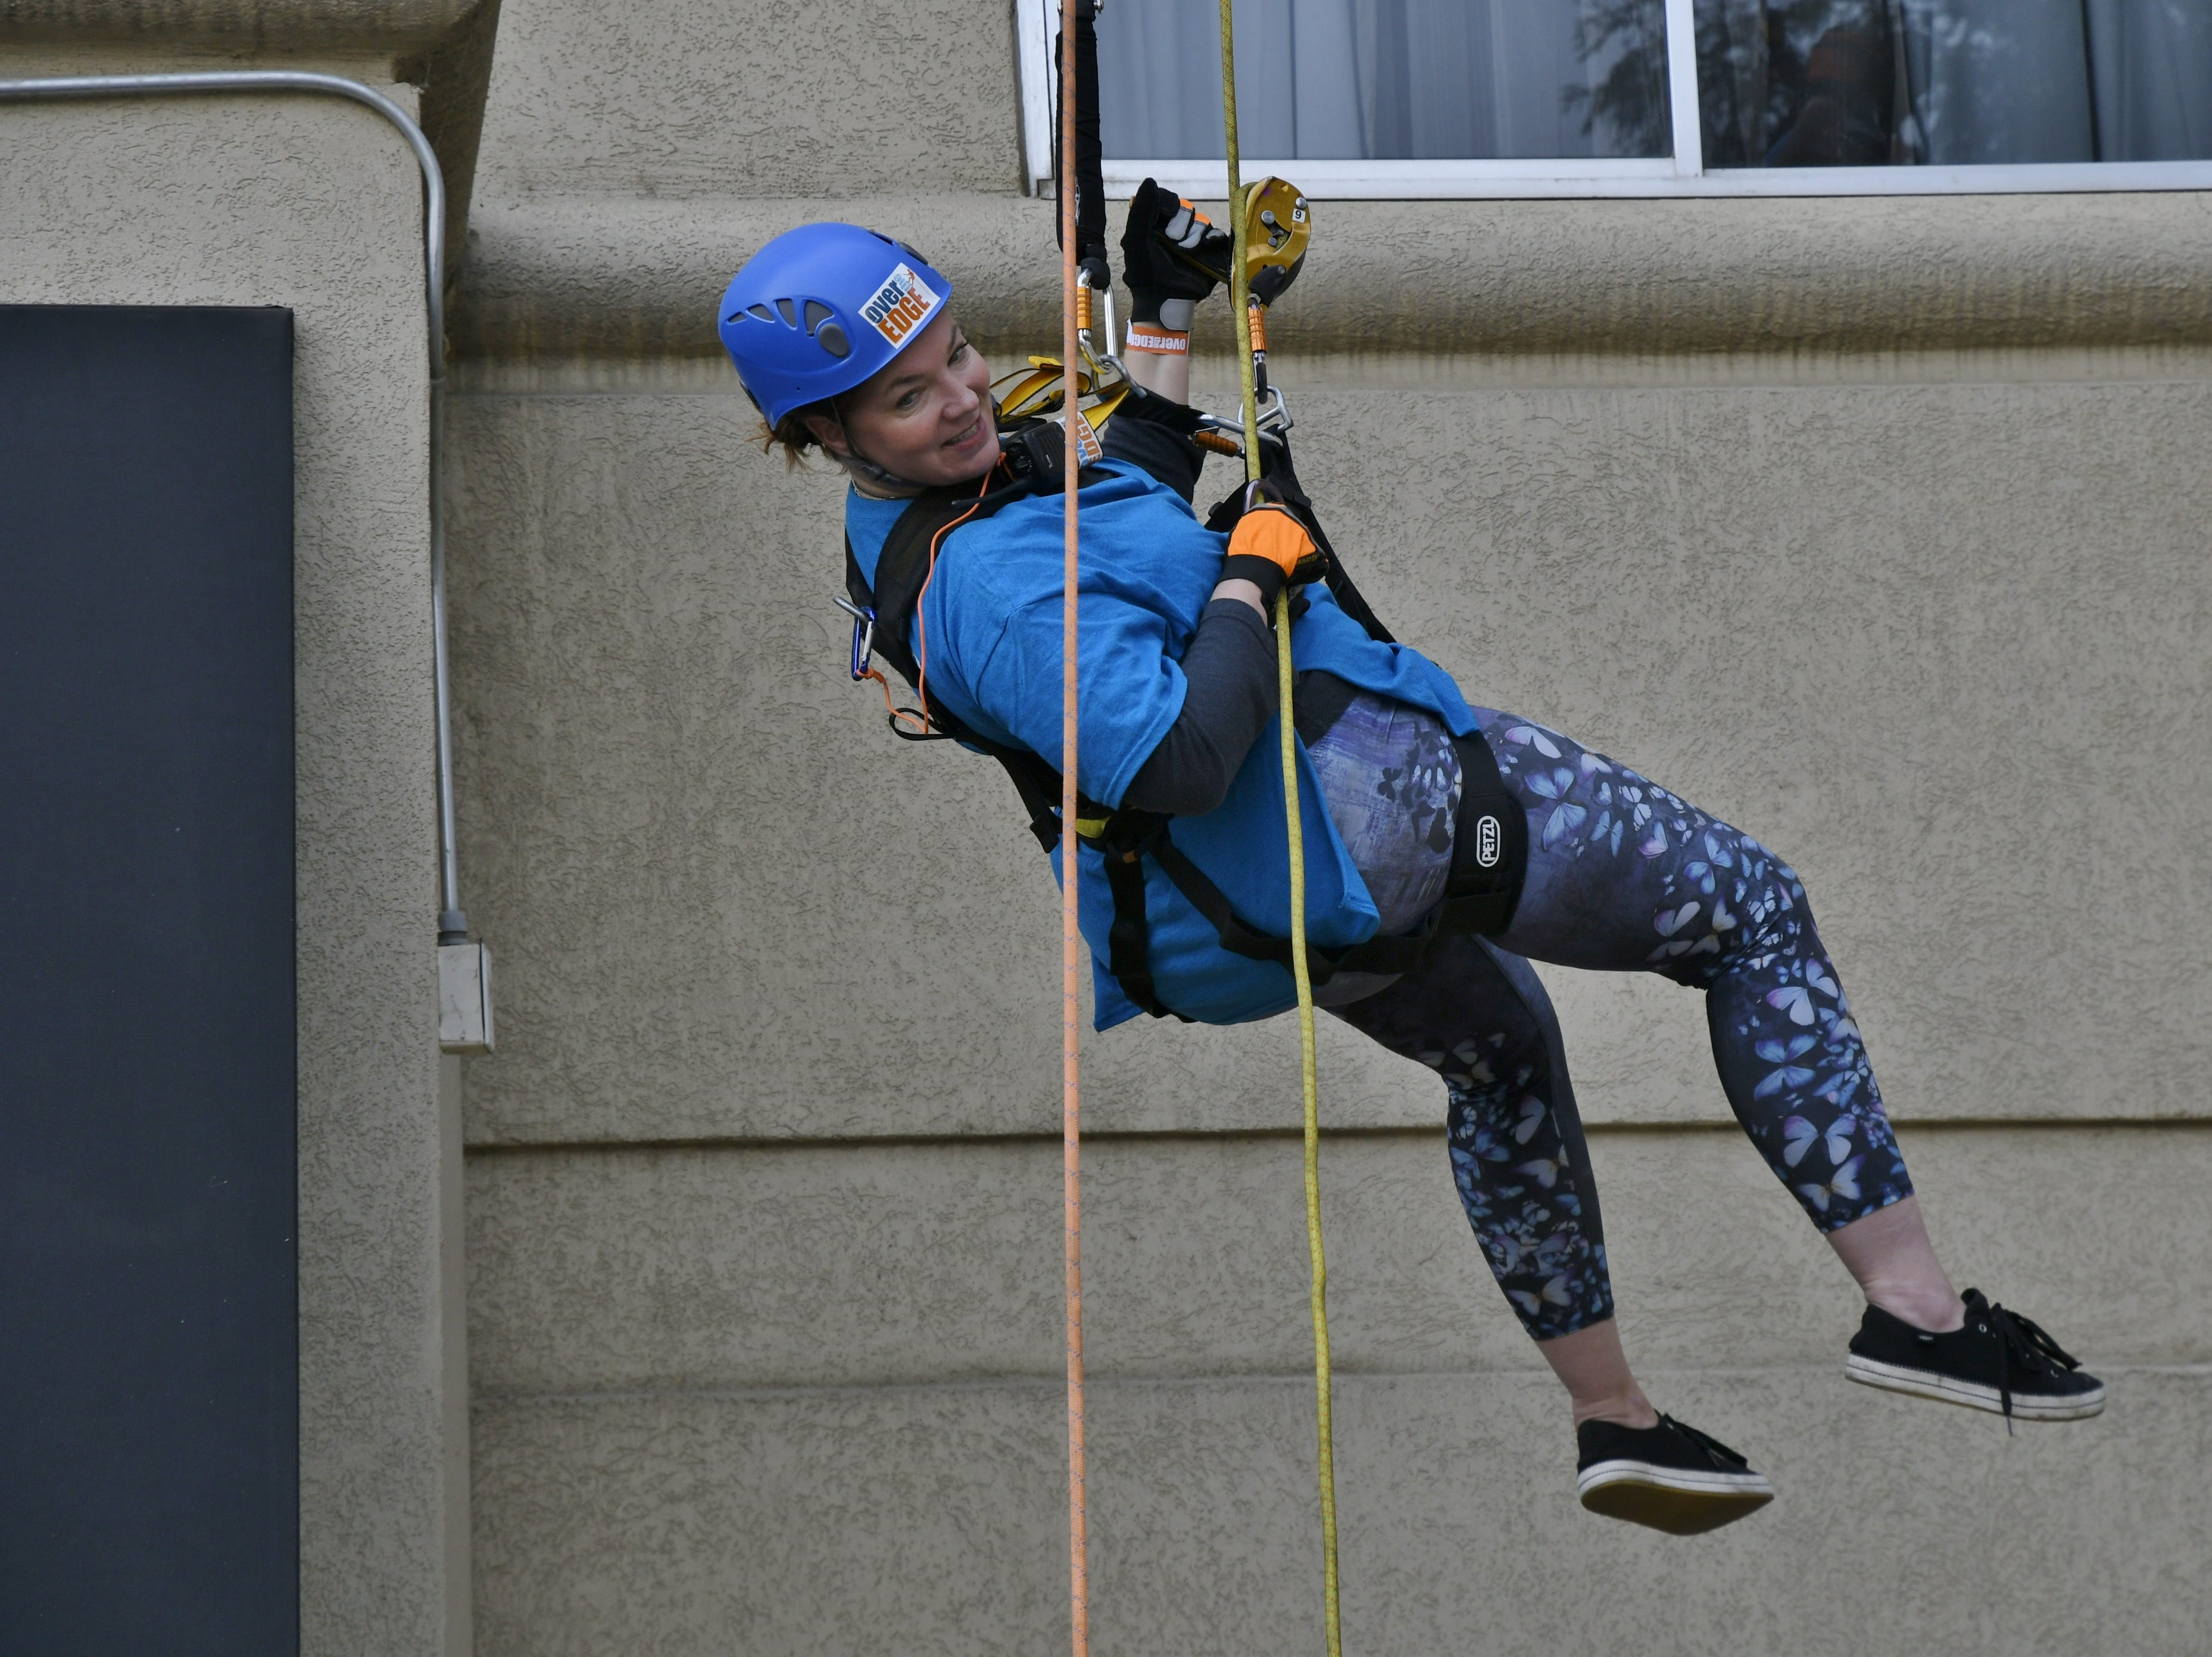 Dana Galante rappels down the side of the Visalia Marriott at the Convention Center in downtown Visalia for the first Over the Edge fundraising event for The Source LGBT+ Center on Saturday, November 10, 2018.